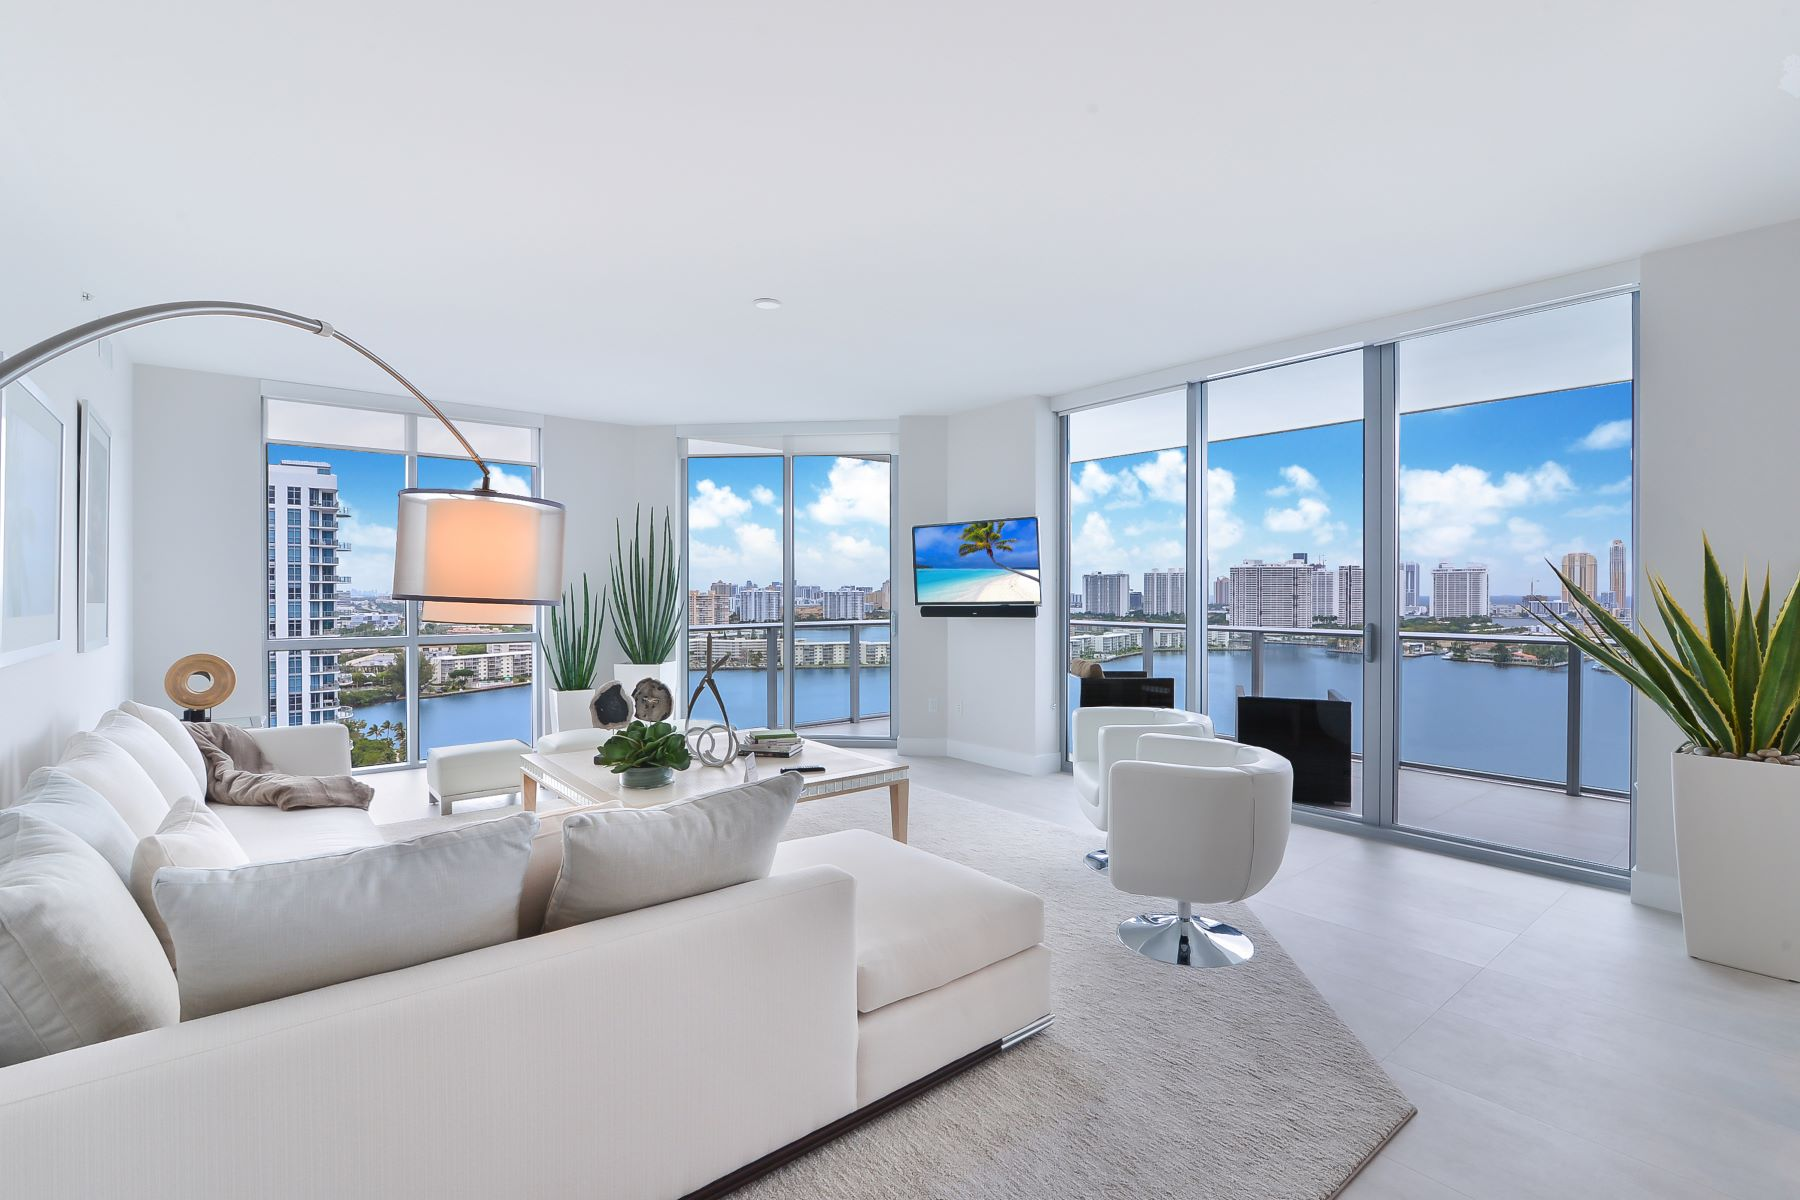 Condominiums for Sale at 17111 Biscayne Blvd 2009 North Miami Beach, Florida 33160 United States